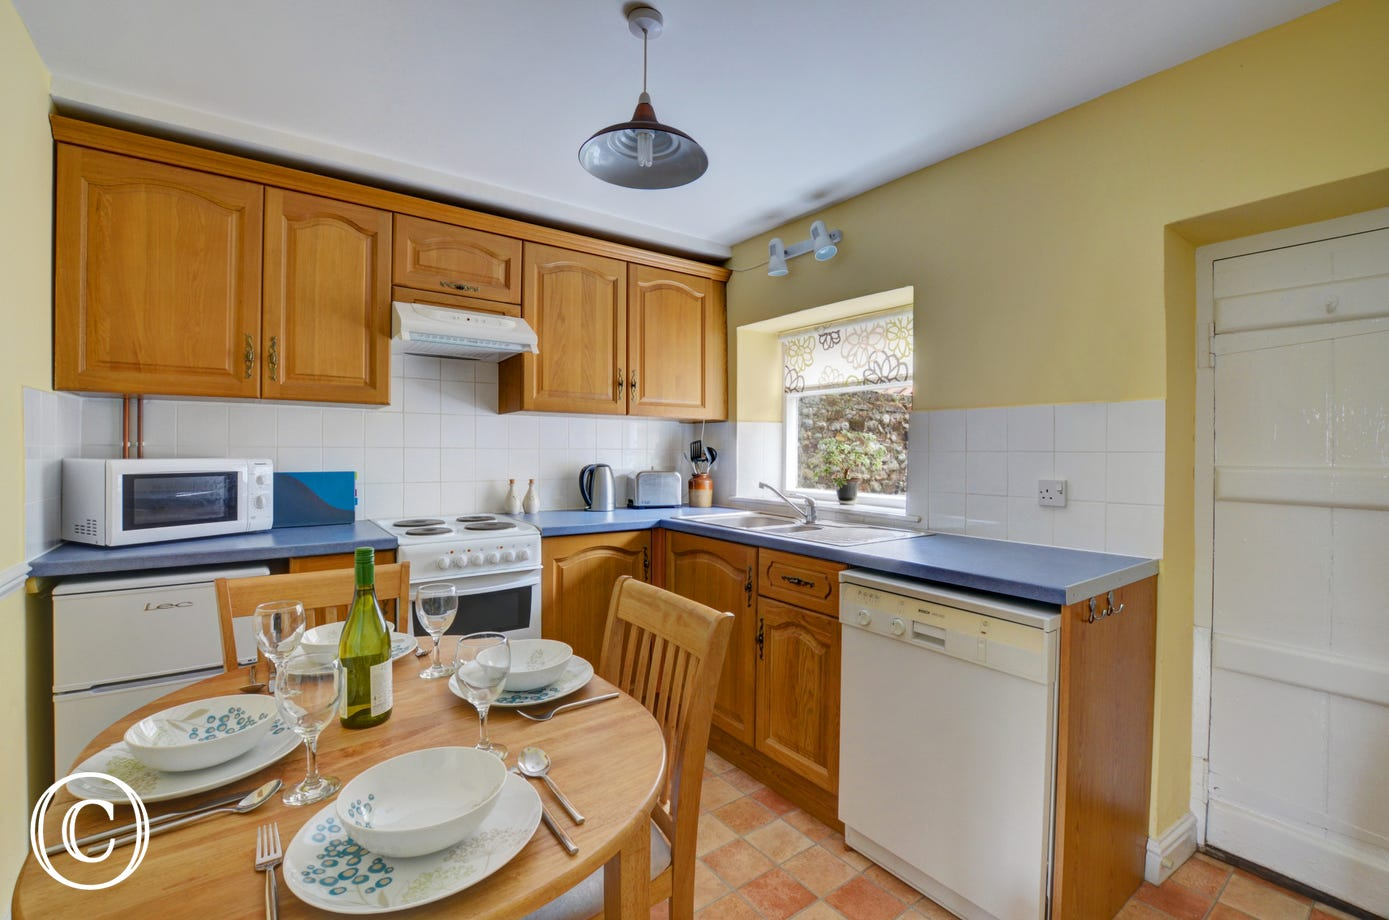 There is an electric hob and oven, fridge with icebox, microwave, dishwasher and table and chairs in for kitchen dining.